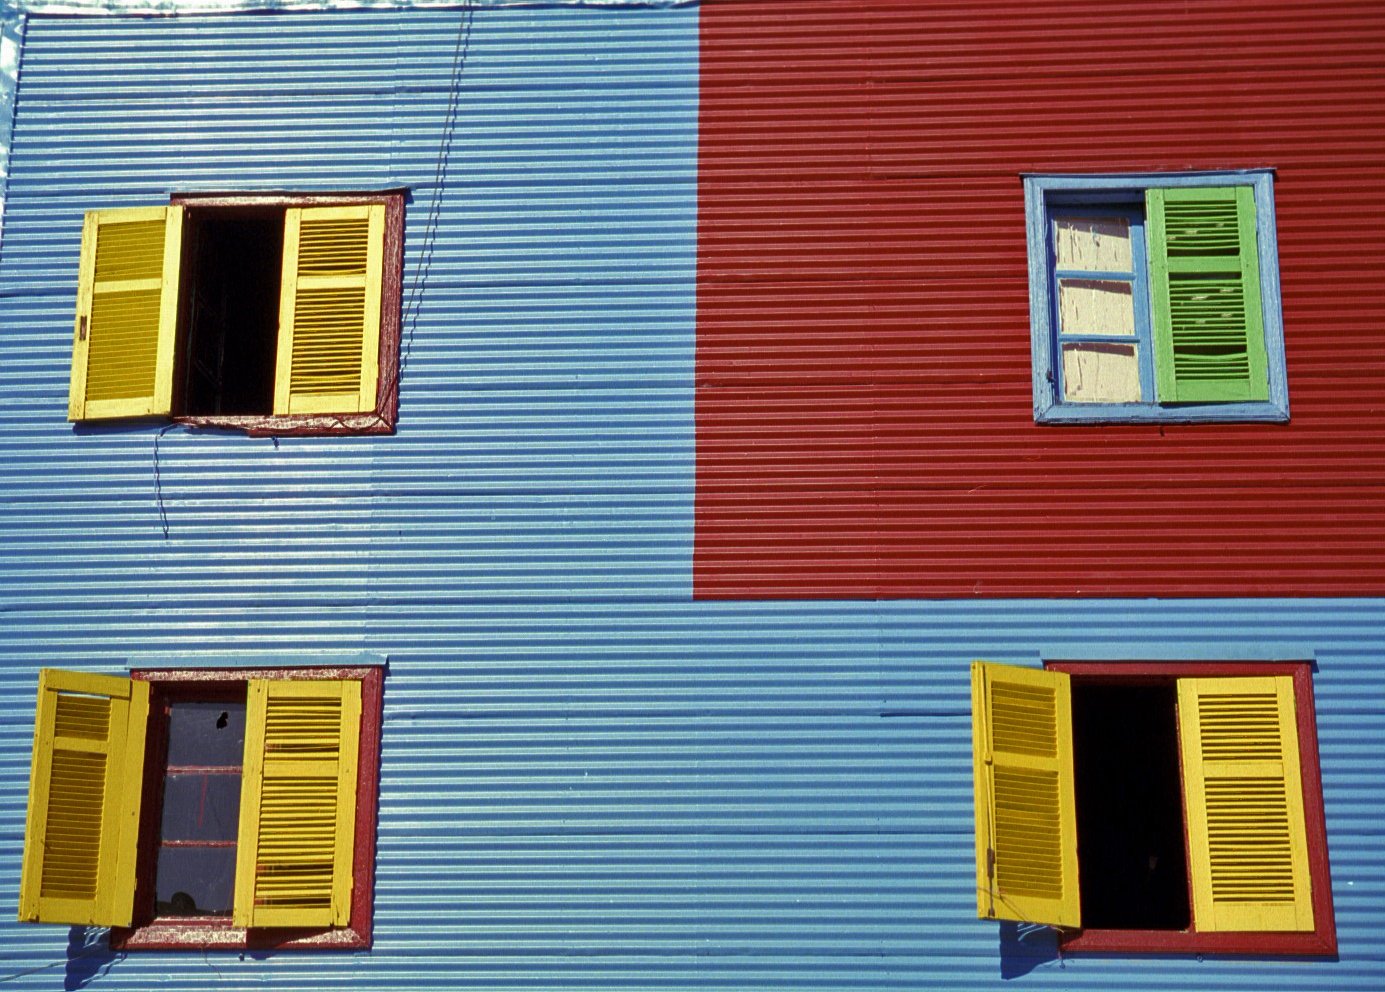 the La Boca neighborhood, Buenos Aires (this image not suitable for large prints)